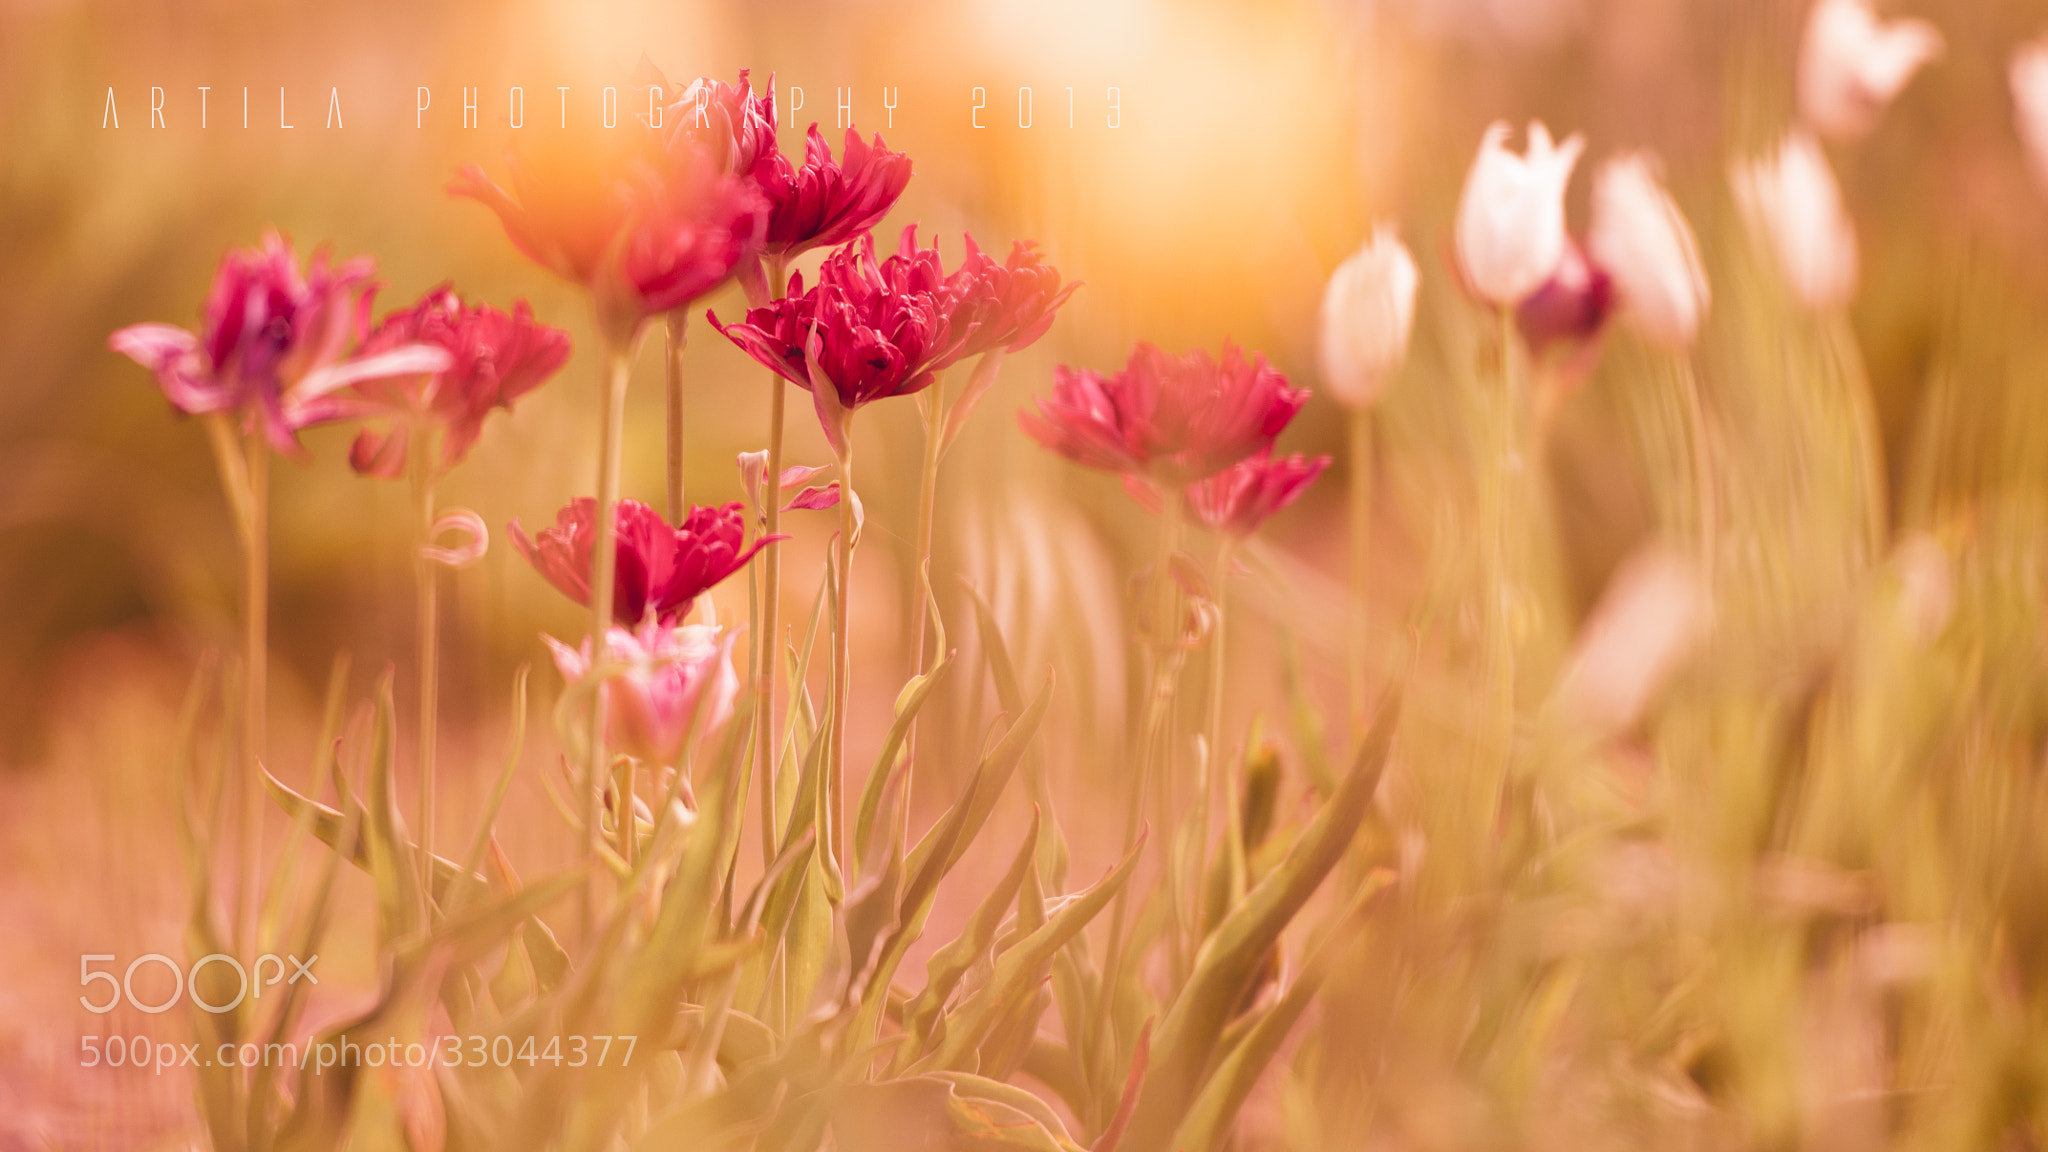 Photograph Flowers by artila photography on 500px